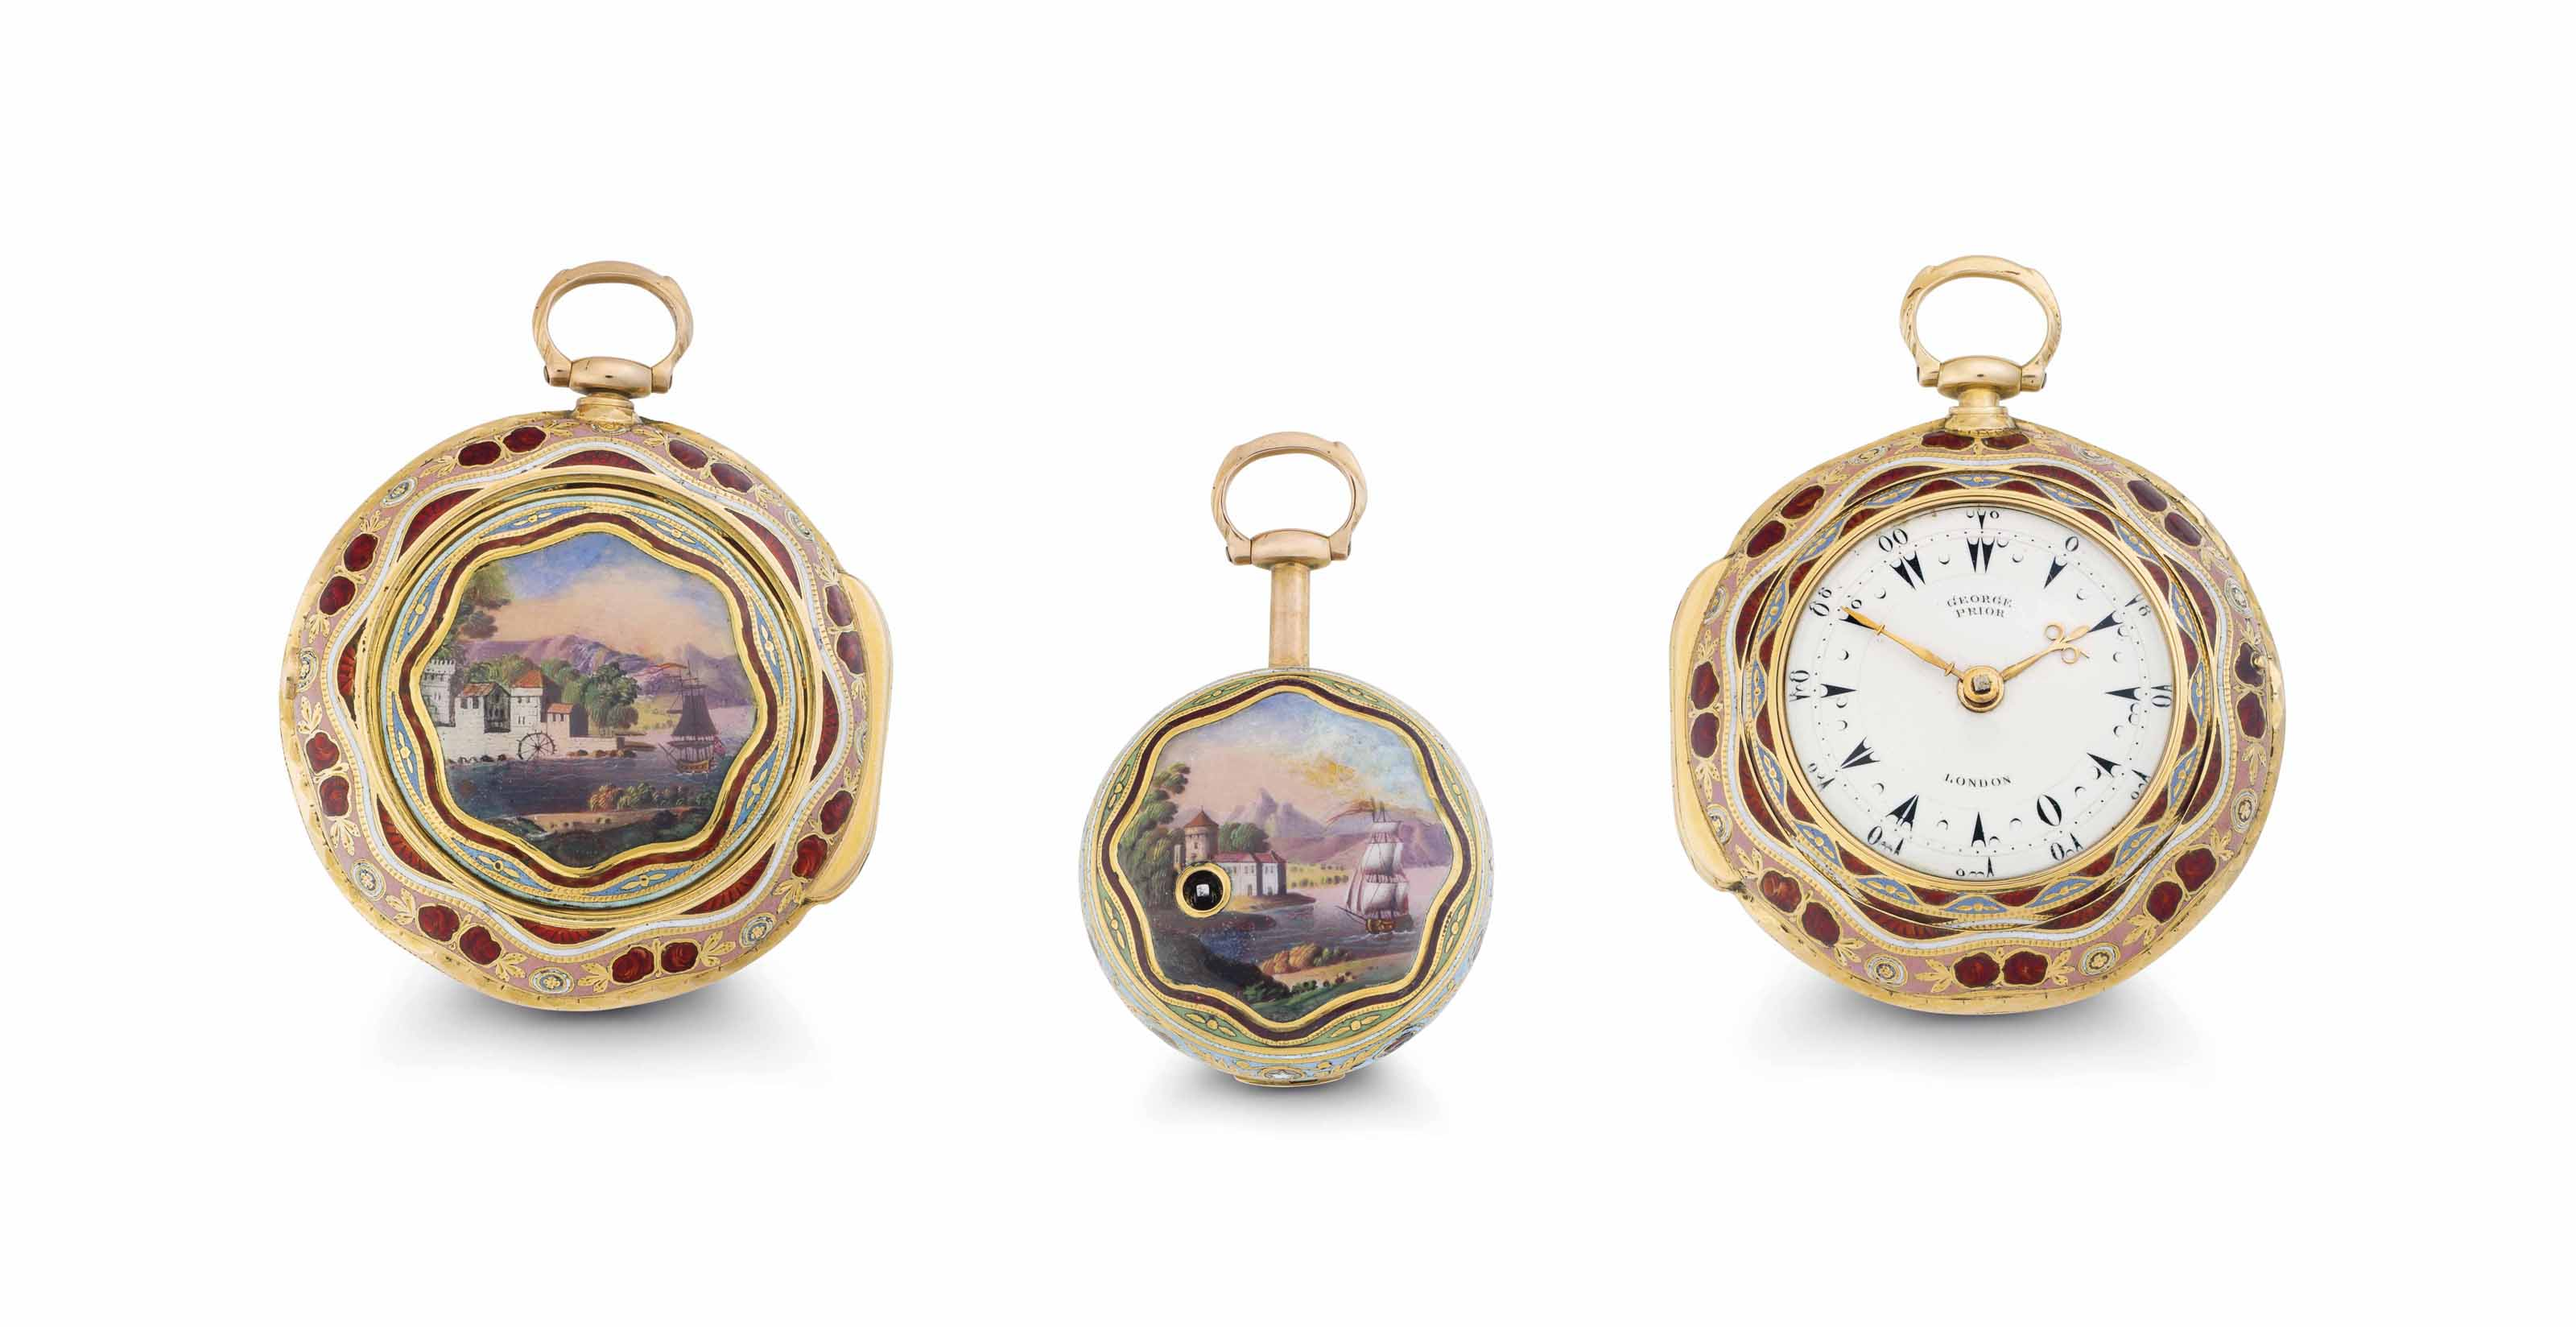 Edward Prior. A Fine and Rare 18k Gold and Enamel Triple Case Verge Watch Made for the Turkish Market